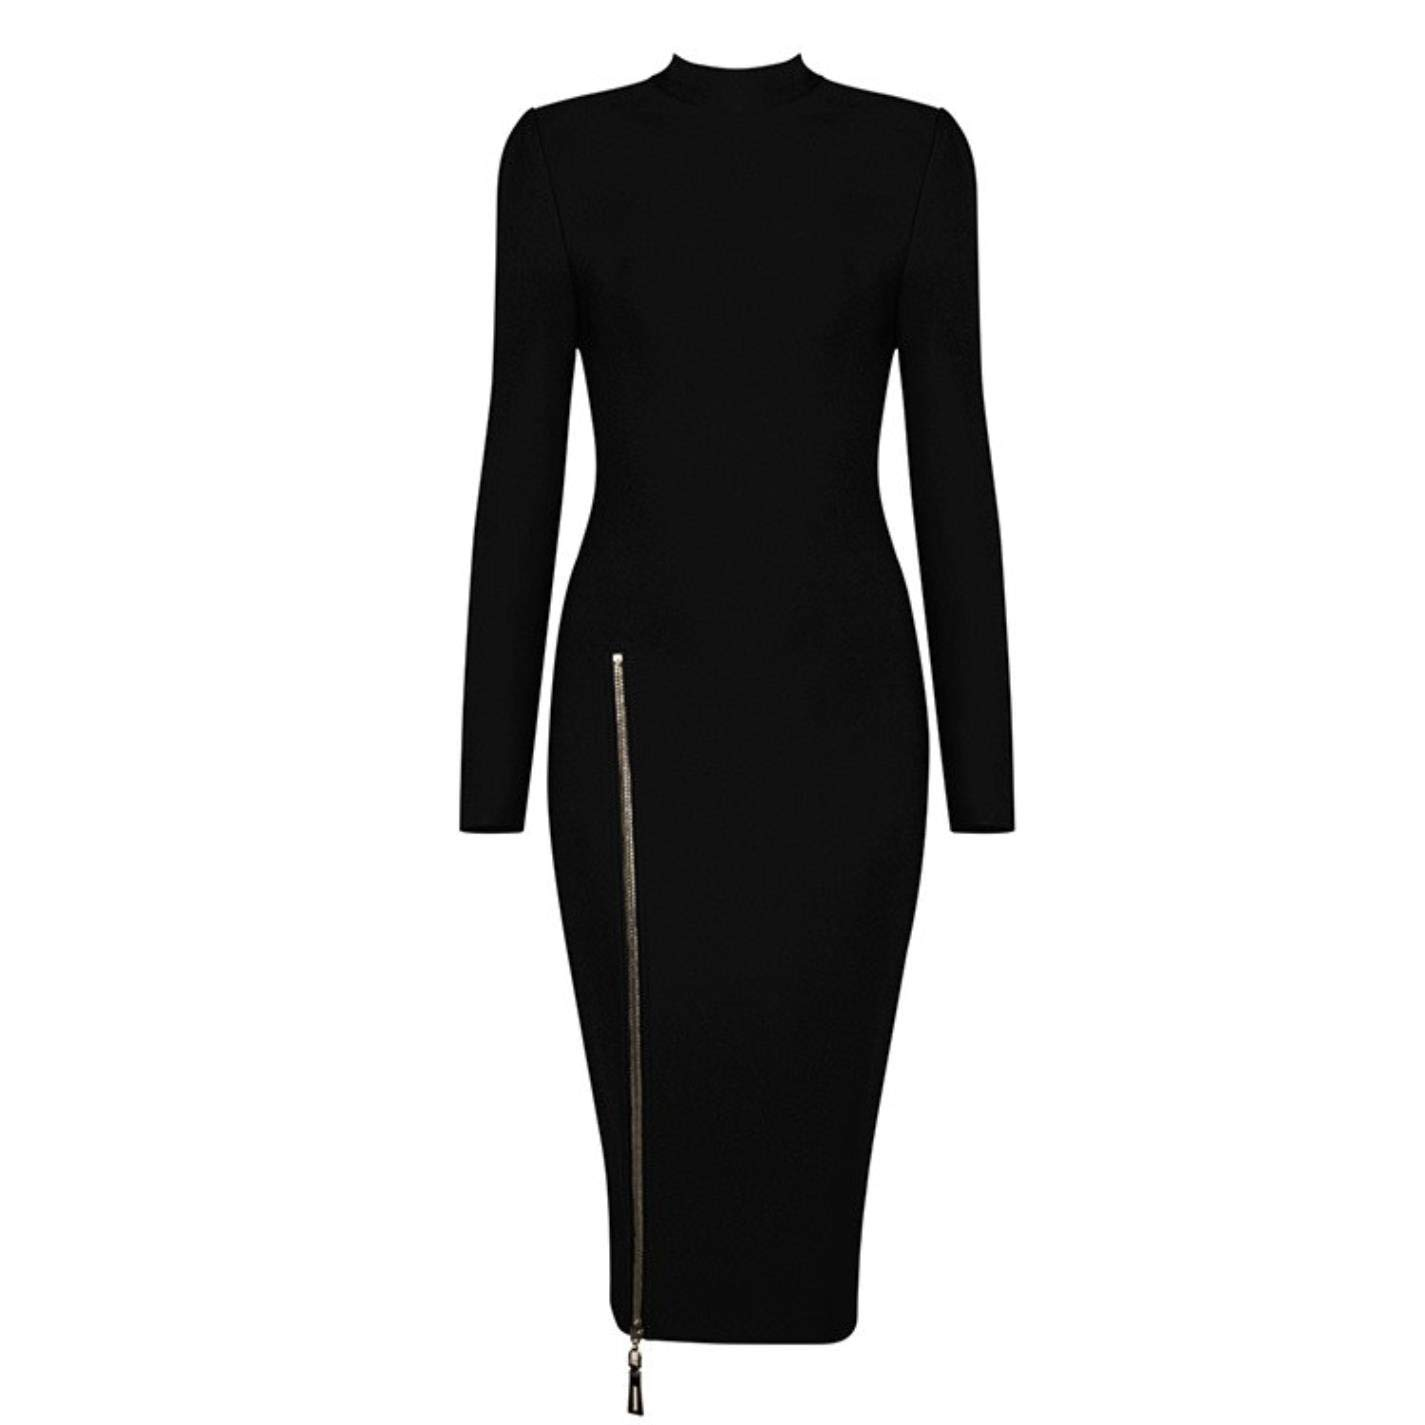 Black Women Turtleneck Long Sleeve Zipper Dress Celebrity Party Bodycon Dress